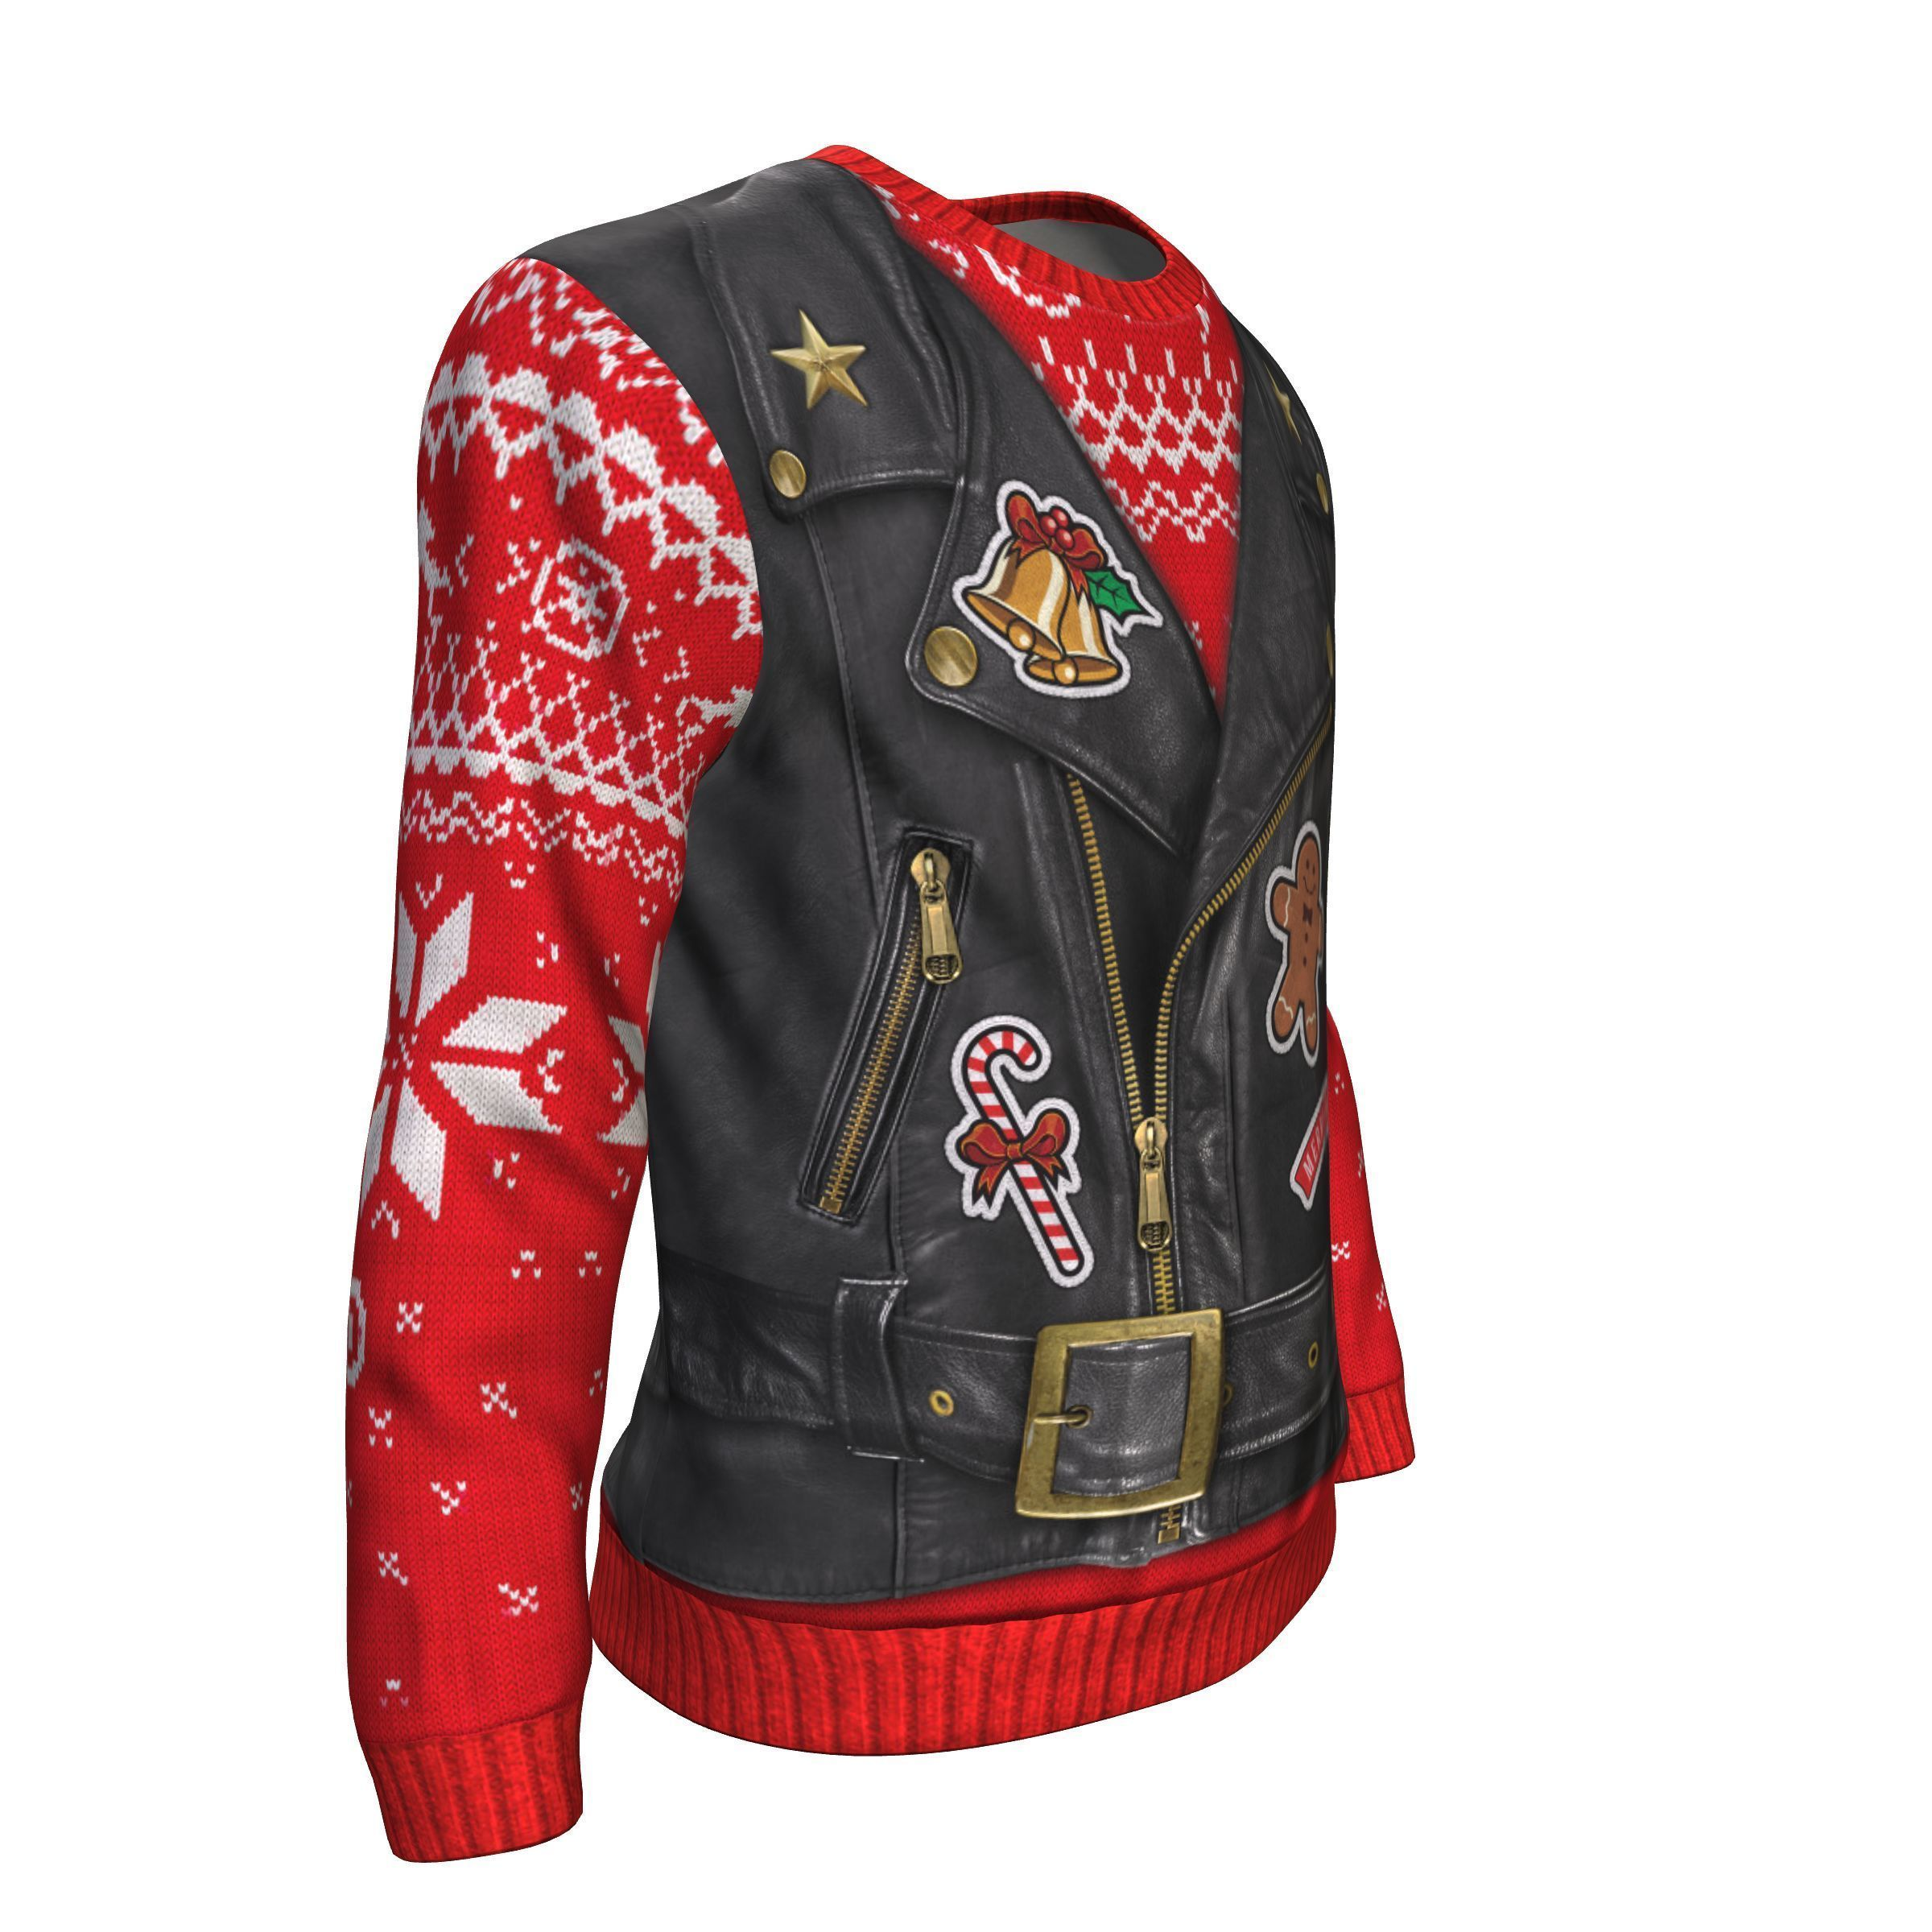 Biker Christmas.It Is To Ride Santa Claus For Biker Christmas All Over Printed Sweater